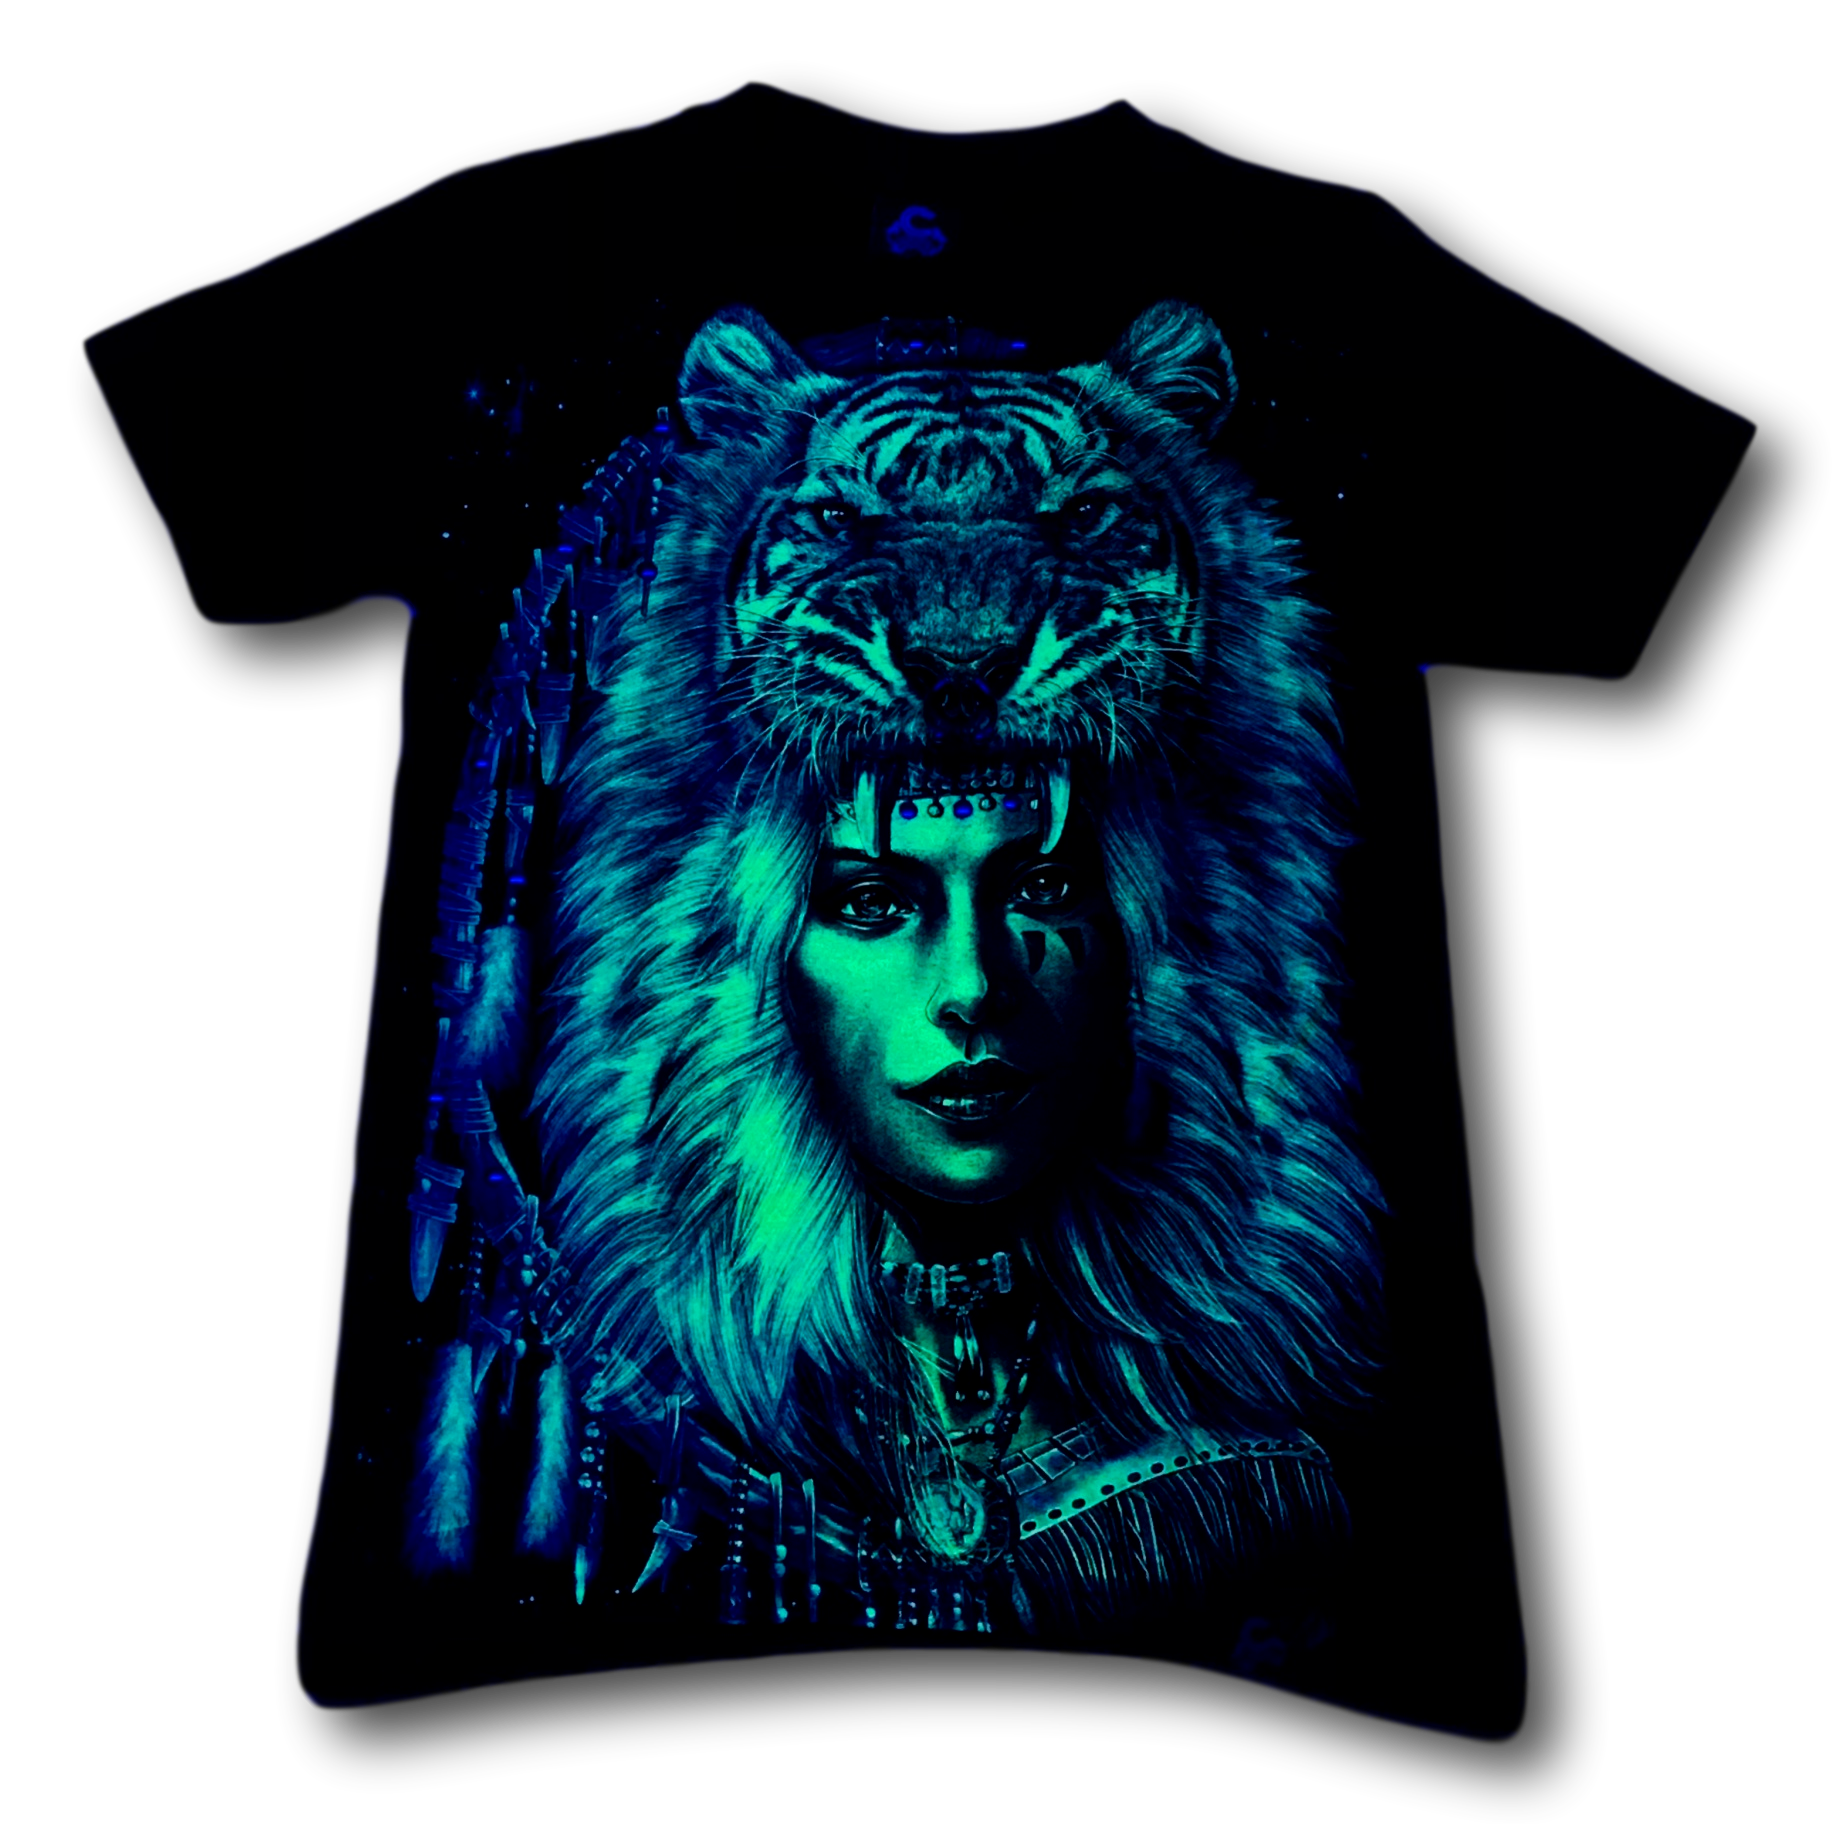 Native Indian Lady with Tiger Crown Metal Nose Ring Glow in the Dark 4D Caballo T-Shirt